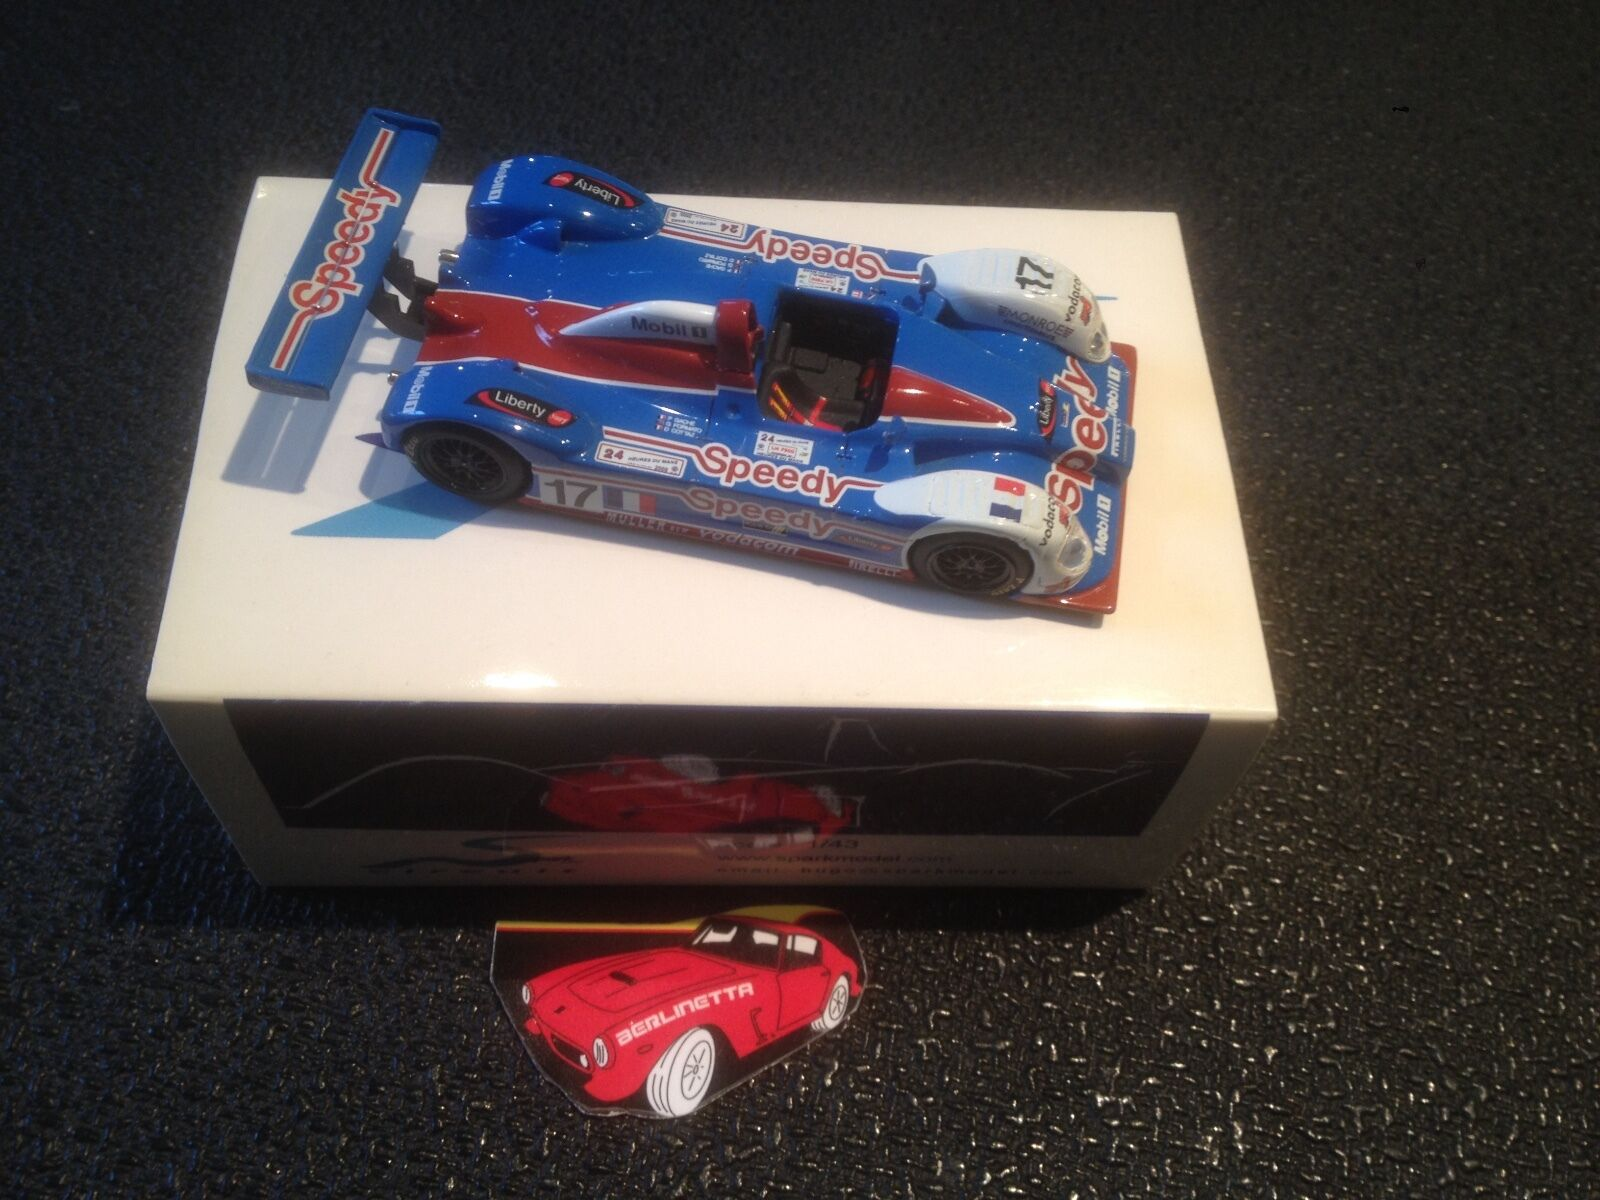 SPARK SCCG08 COURAGE C60 LE MANS 2000 1 43 IN METAL BOX WITH CARD SLEEVE